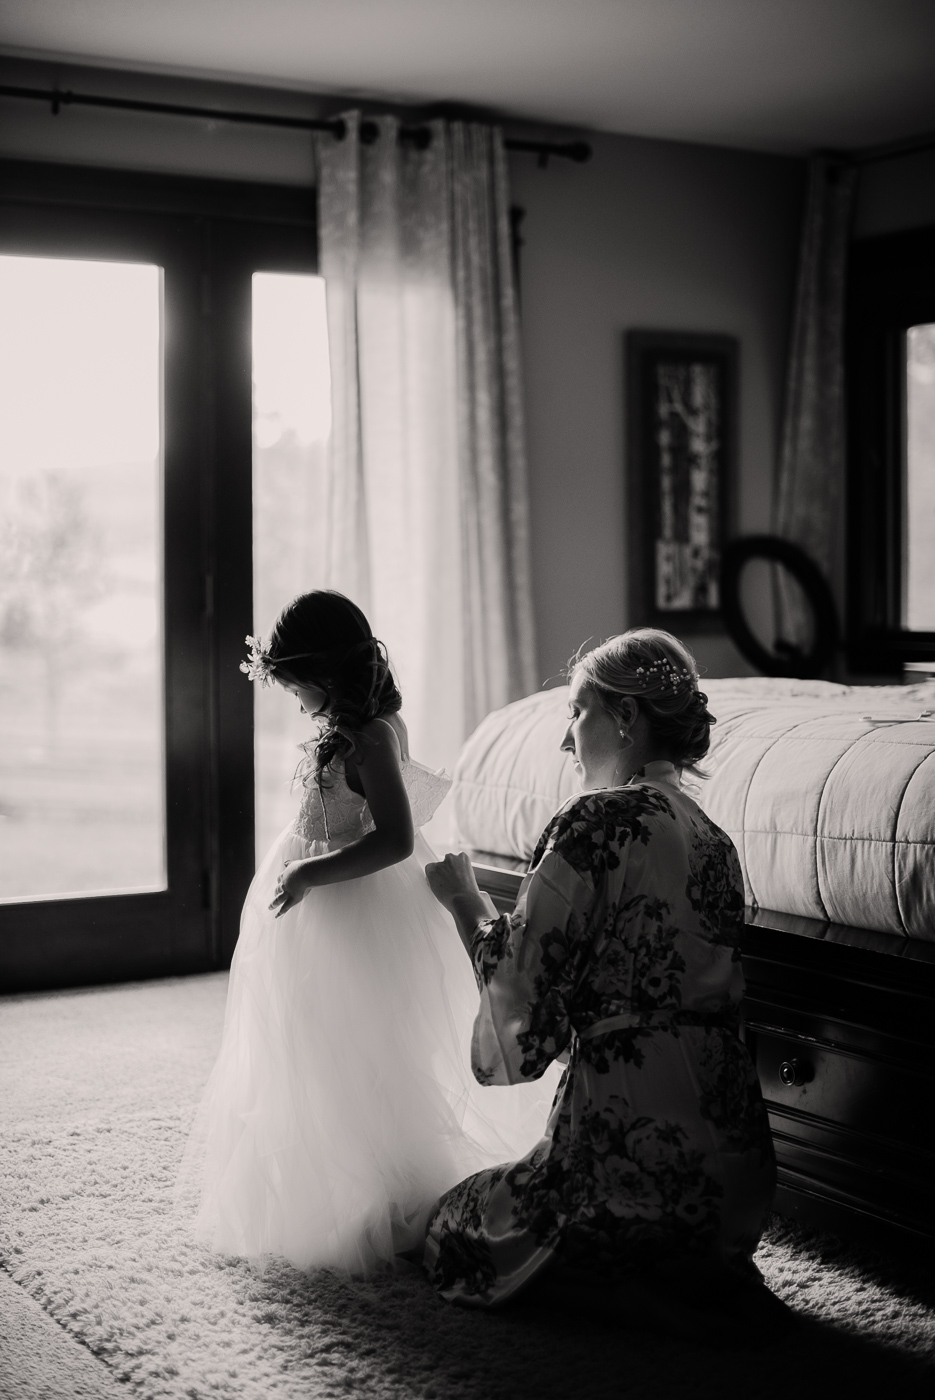 PHOCO2018TopPhotos_portrait_wedding-1.jpg